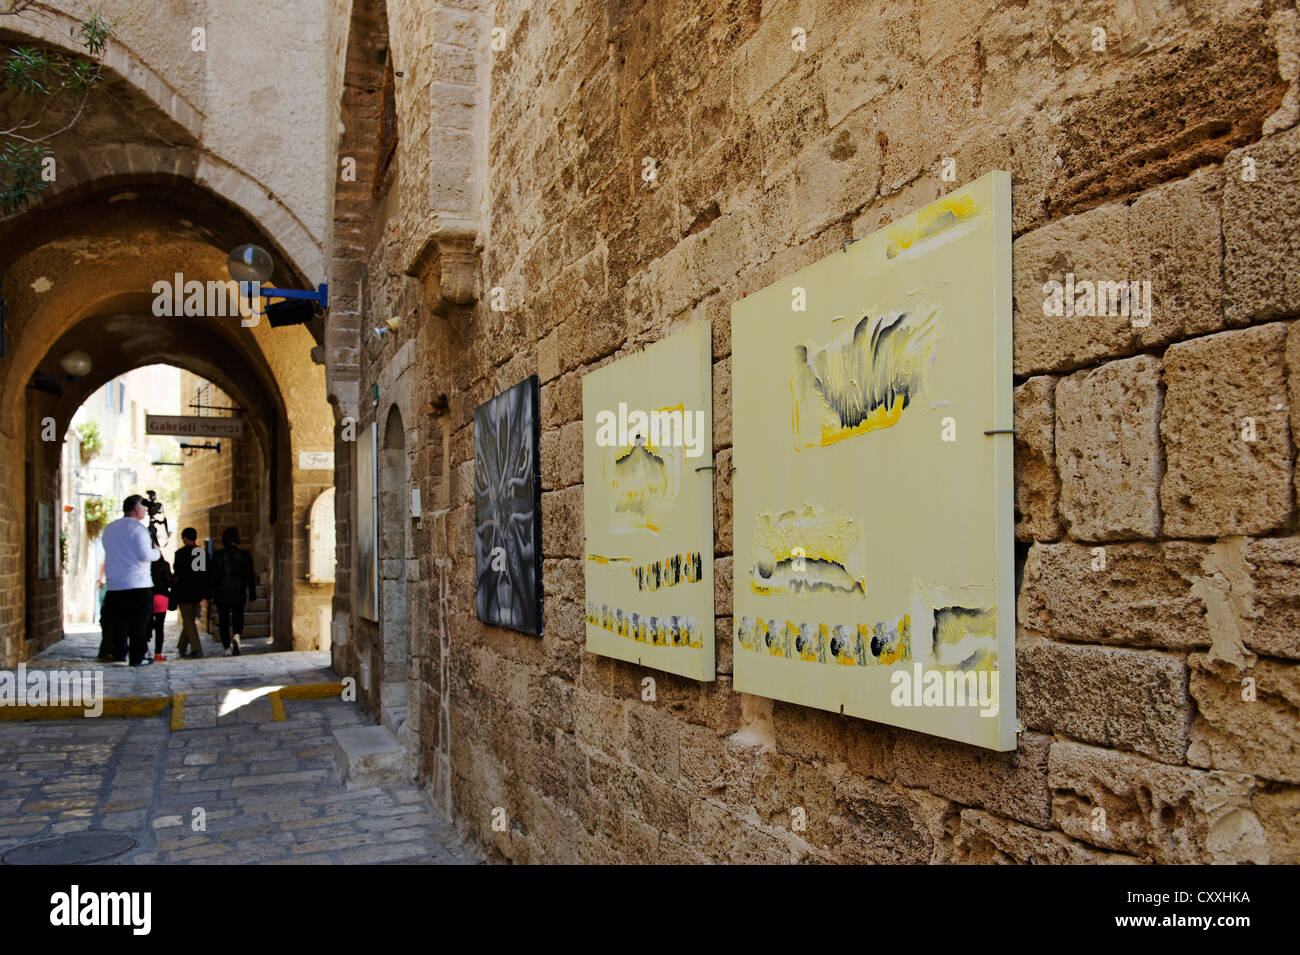 Artists' Quarter in the old city of Jaffa, Tel Aviv, Israel, Middle East - Stock Image